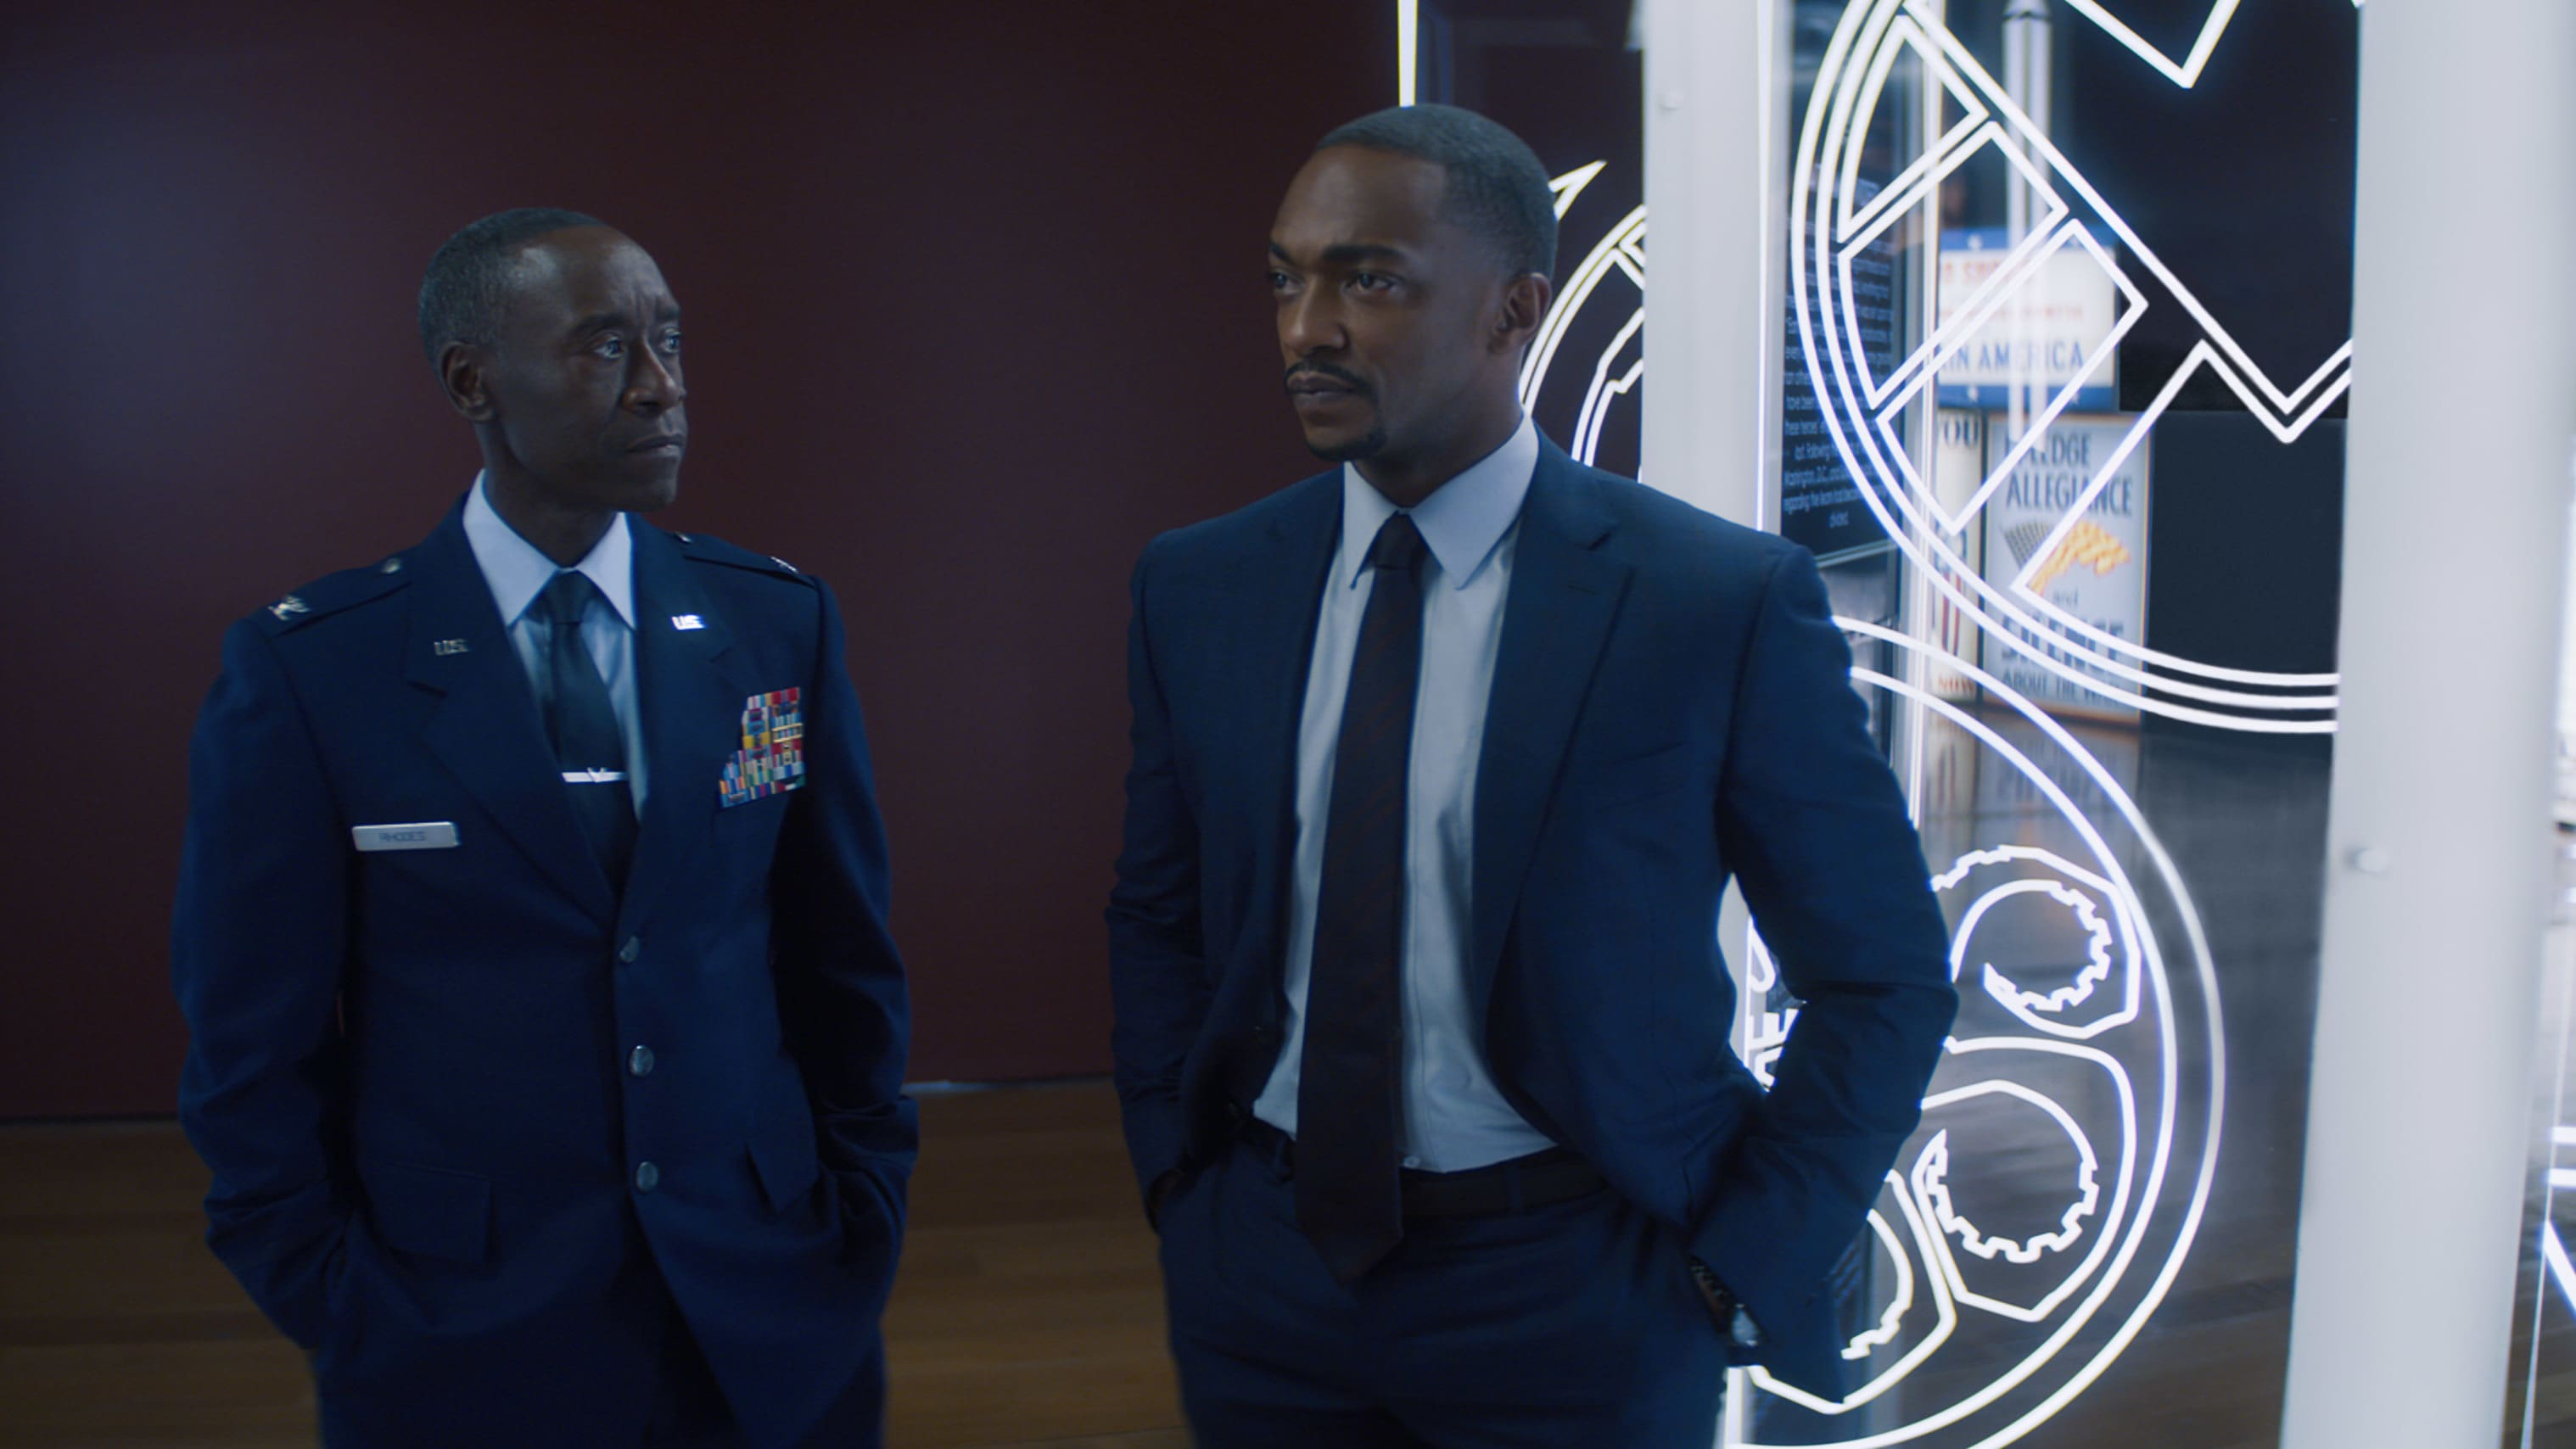 (L-R): Rhodey (Don Cheadle) and Falcon/Sam Wilson (Anthony Mackie)  in Marvel Studios' THE FALCON AND THE WINTER SOLDIER exclusively on Disney+. Photo courtesy of Marvel Studios. ©Marvel Studios 2021. All Rights Reserved.